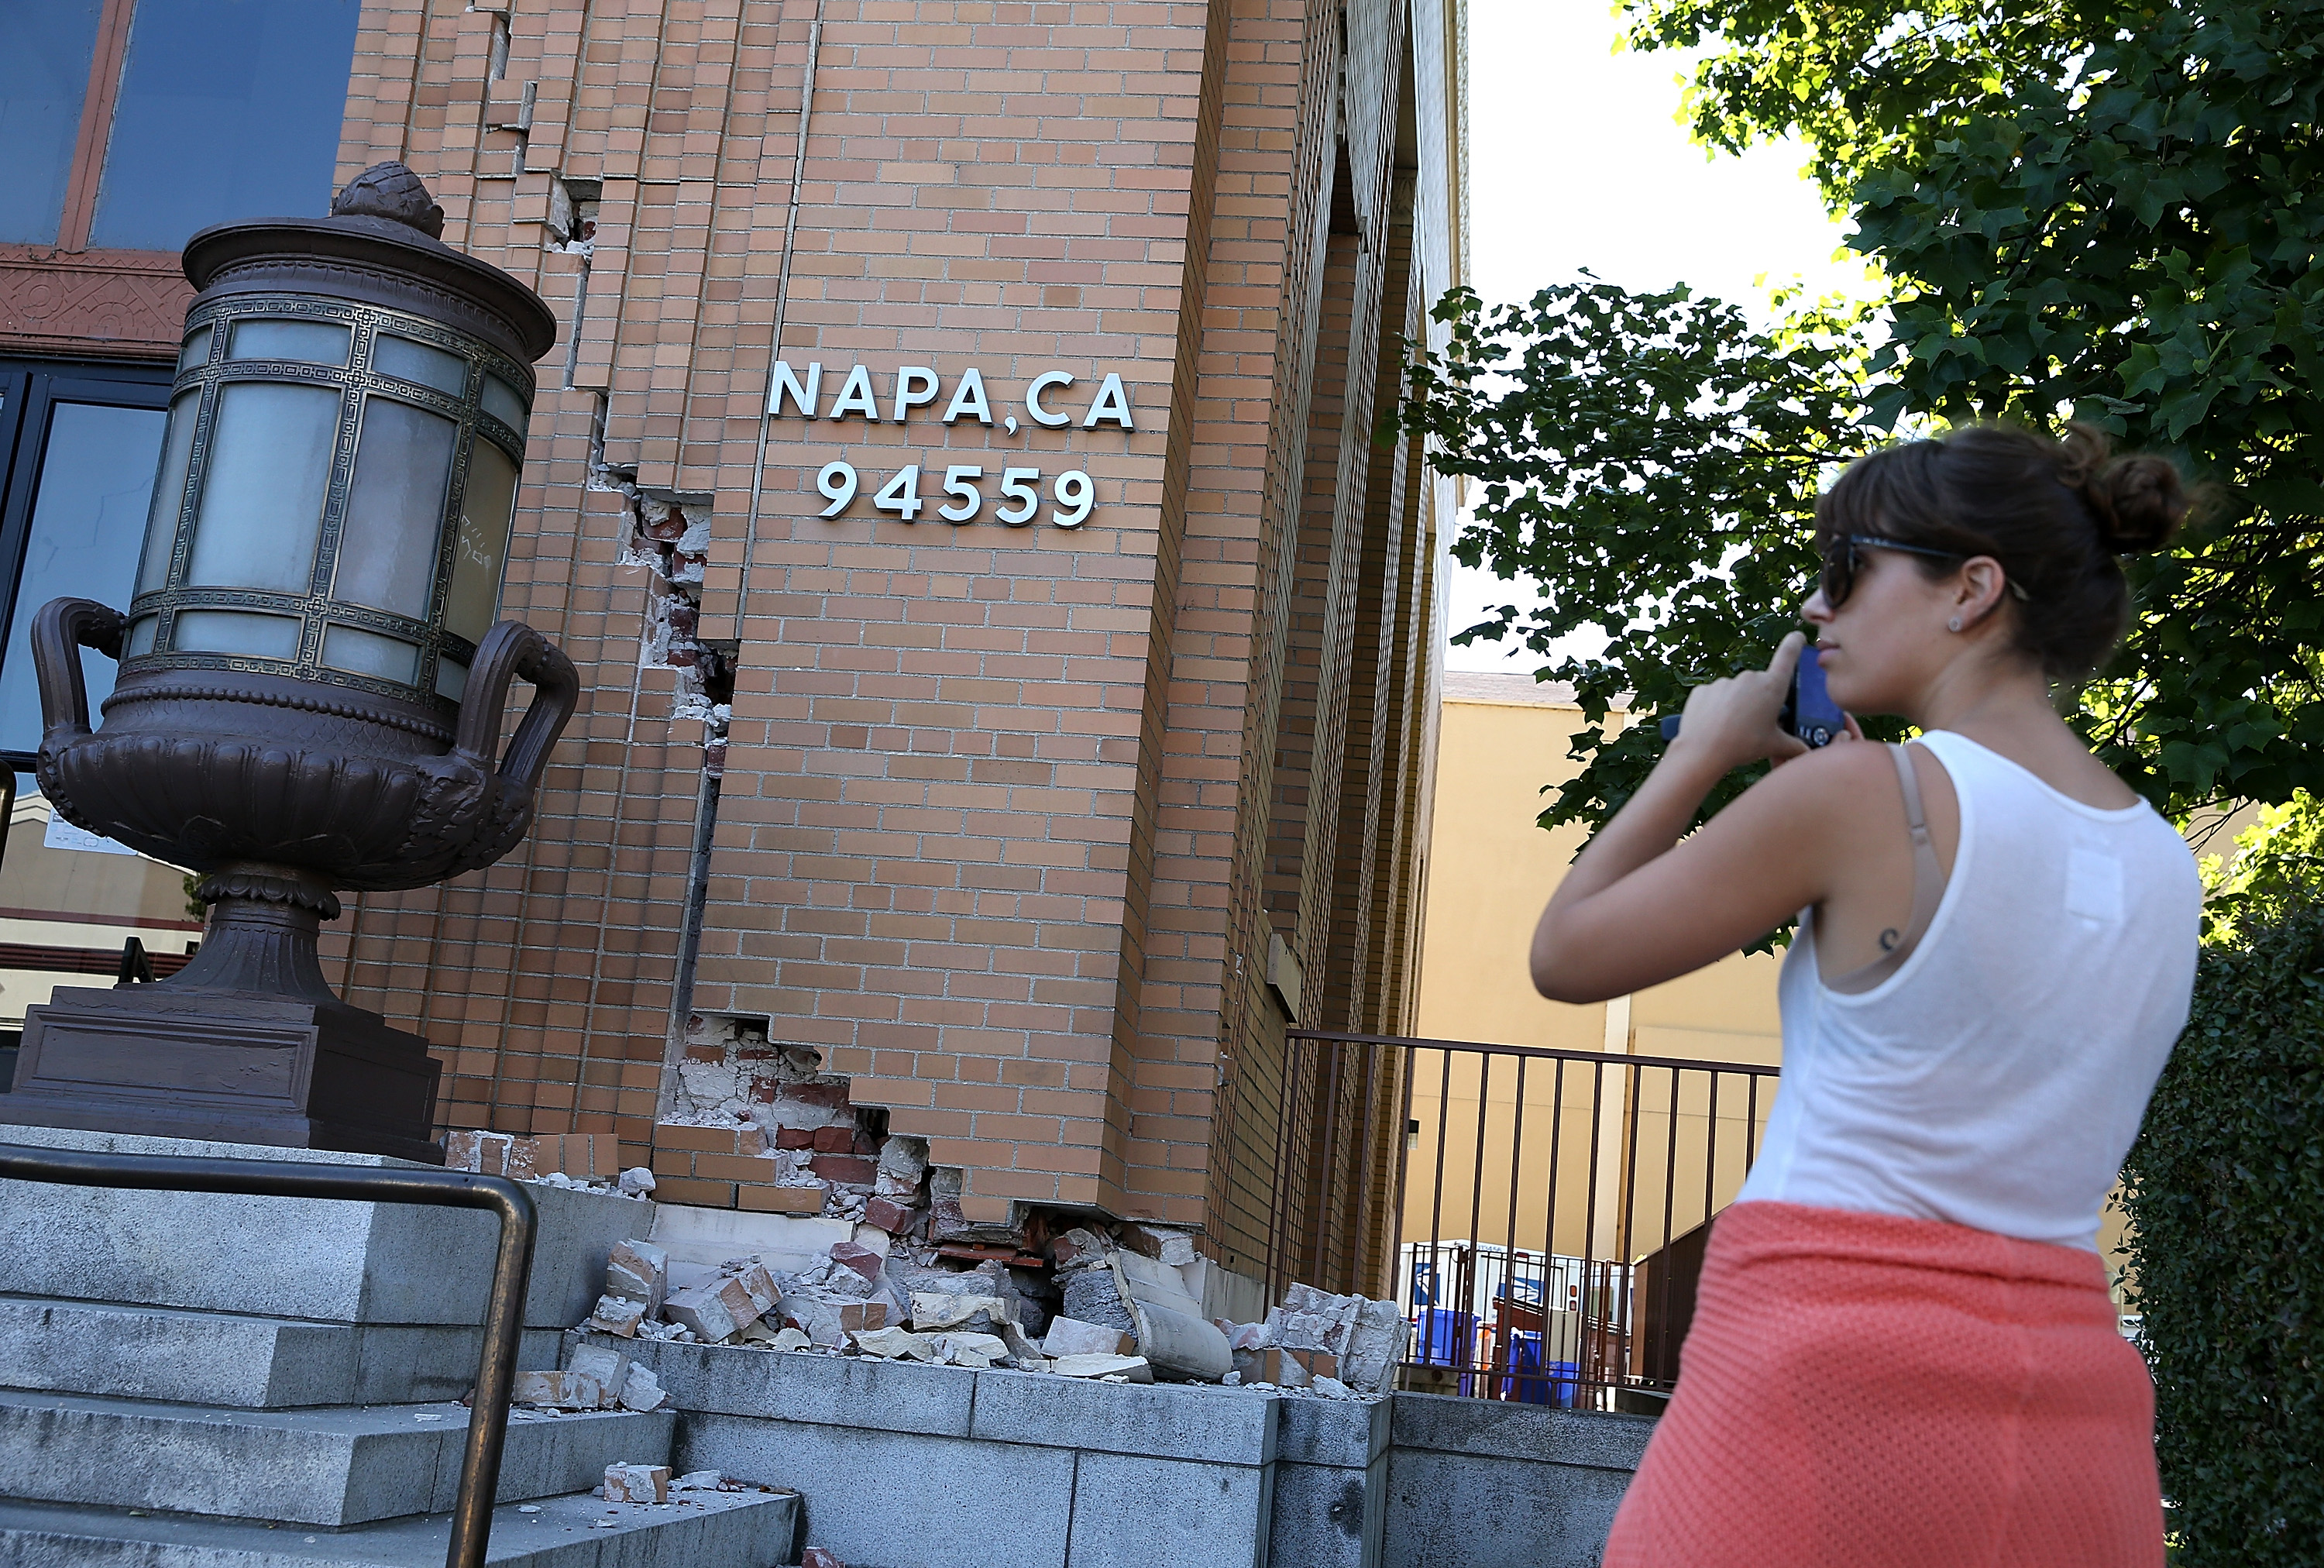 NAPA, CA - AUGUST 24:  A passerby stops to take a picture of damage to the Napa post office following a reported 6.0 earthquake on August 24, 2014 in Napa, California.  A 6.0 earthquake rocked the San Francisco Bay Area shortly after 3:00 am on Sunday morning causing damage to buildings and sending at least 70 people to a hospital with non-life threatening injuries.  (Photo by Justin Sullivan/Getty Images)